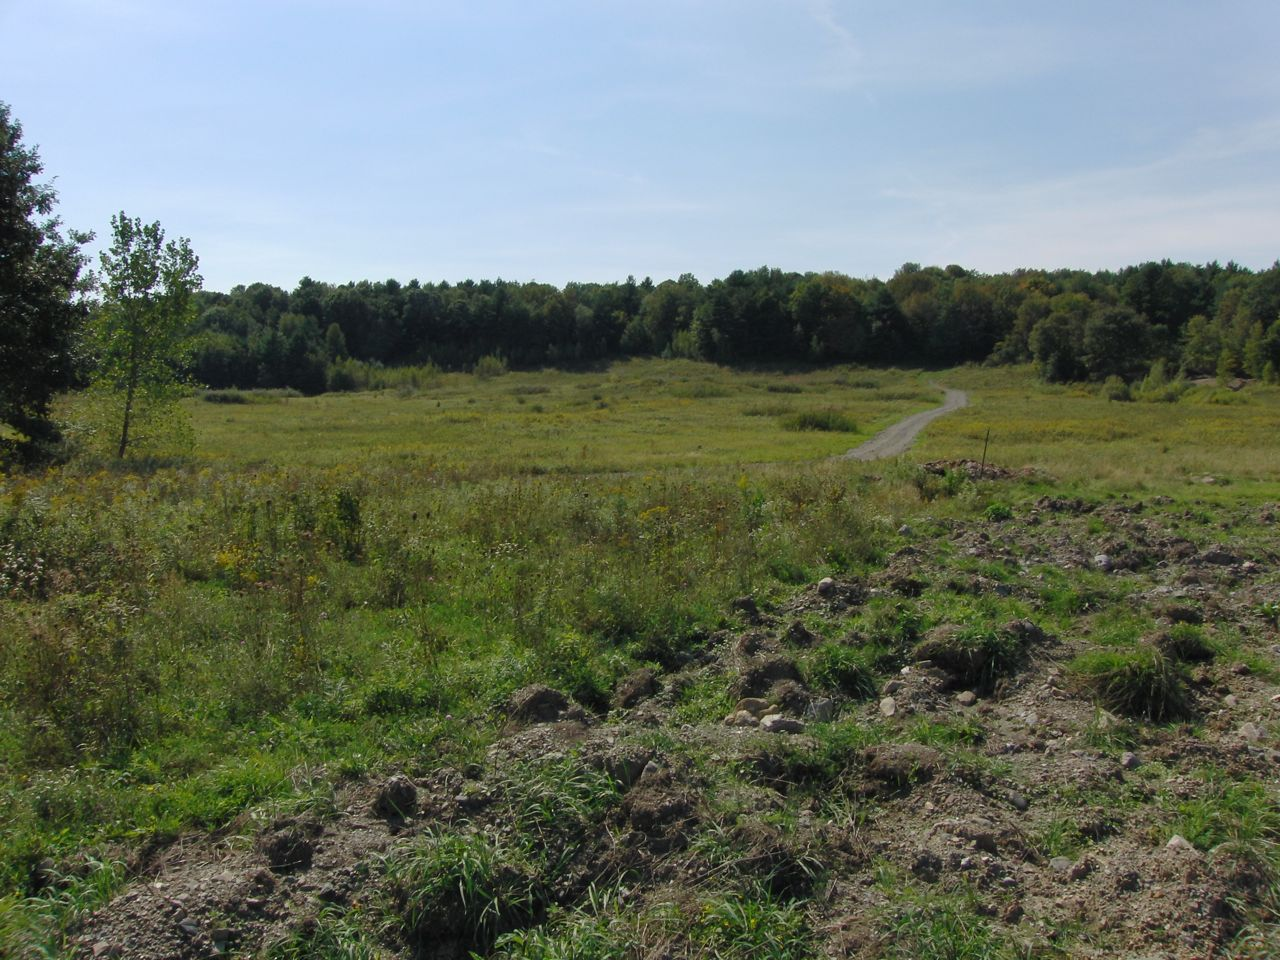 Looking into the 40 acre clearing